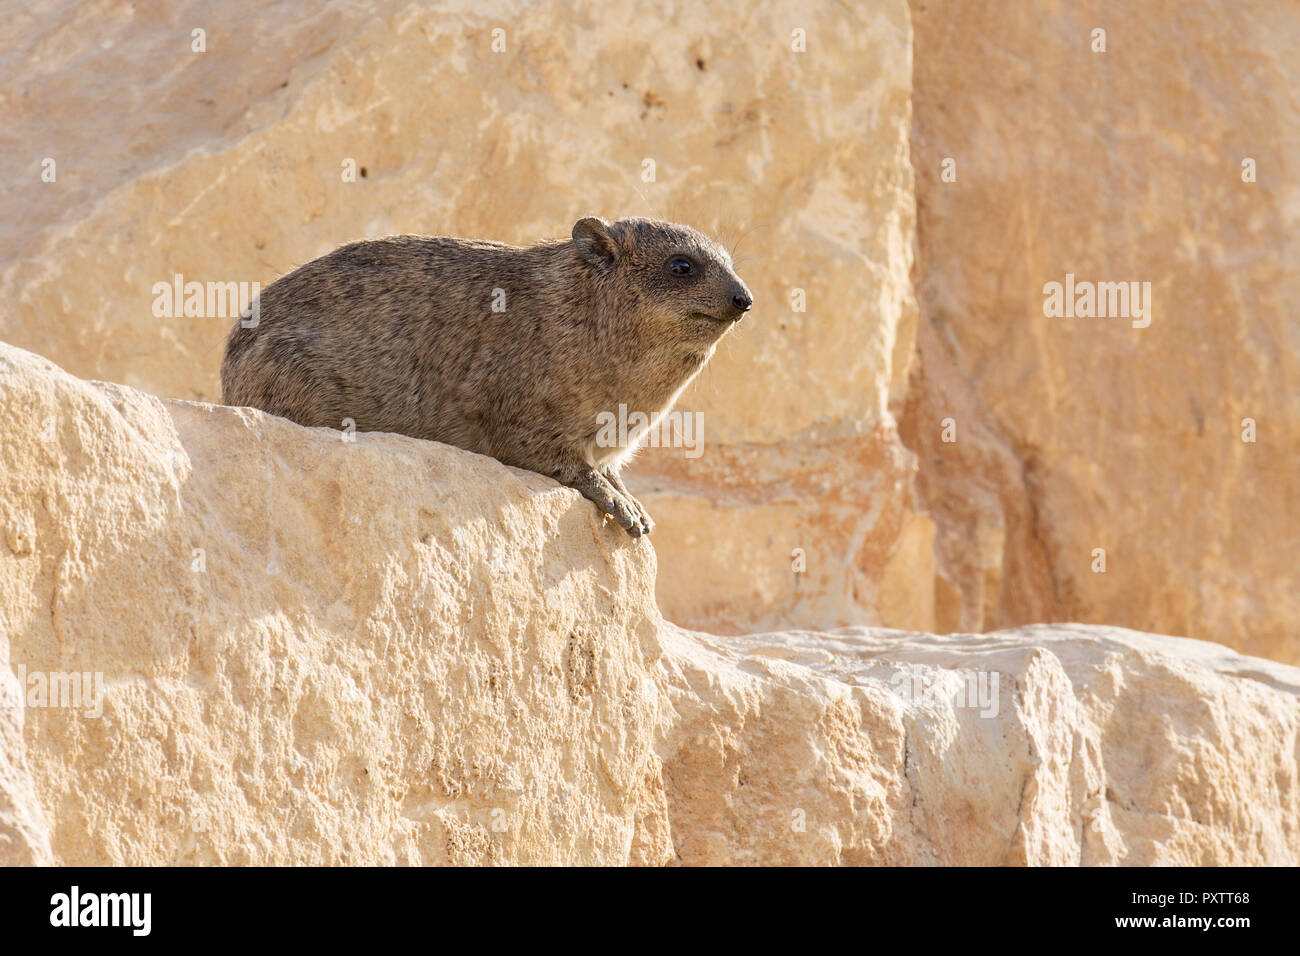 Hyrax animal sitting on rock with tree out to focus background Stock Photo